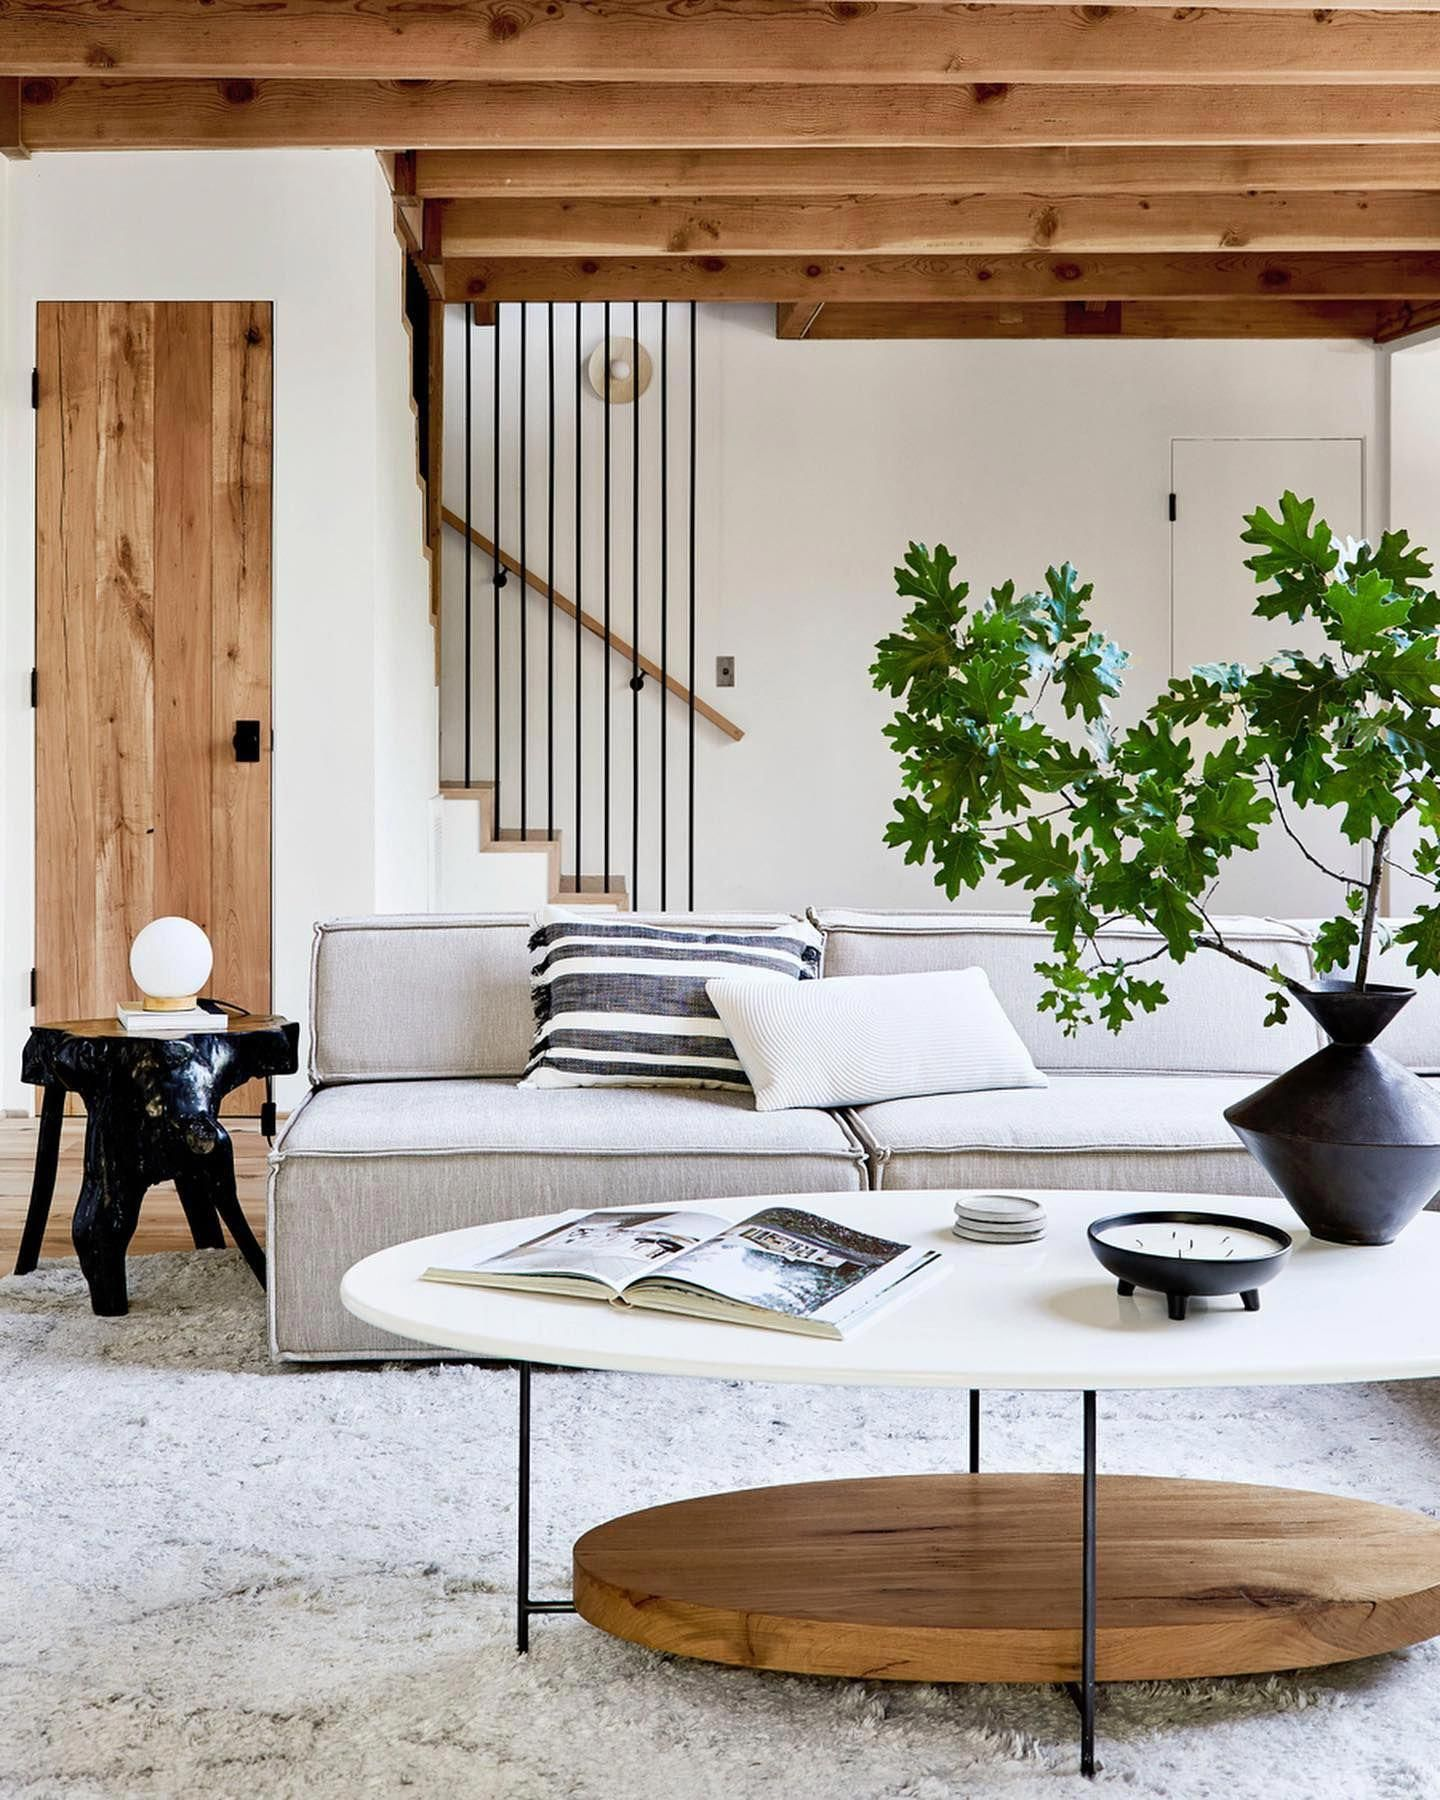 has simplicity become more popular in home decor and lifestyle?